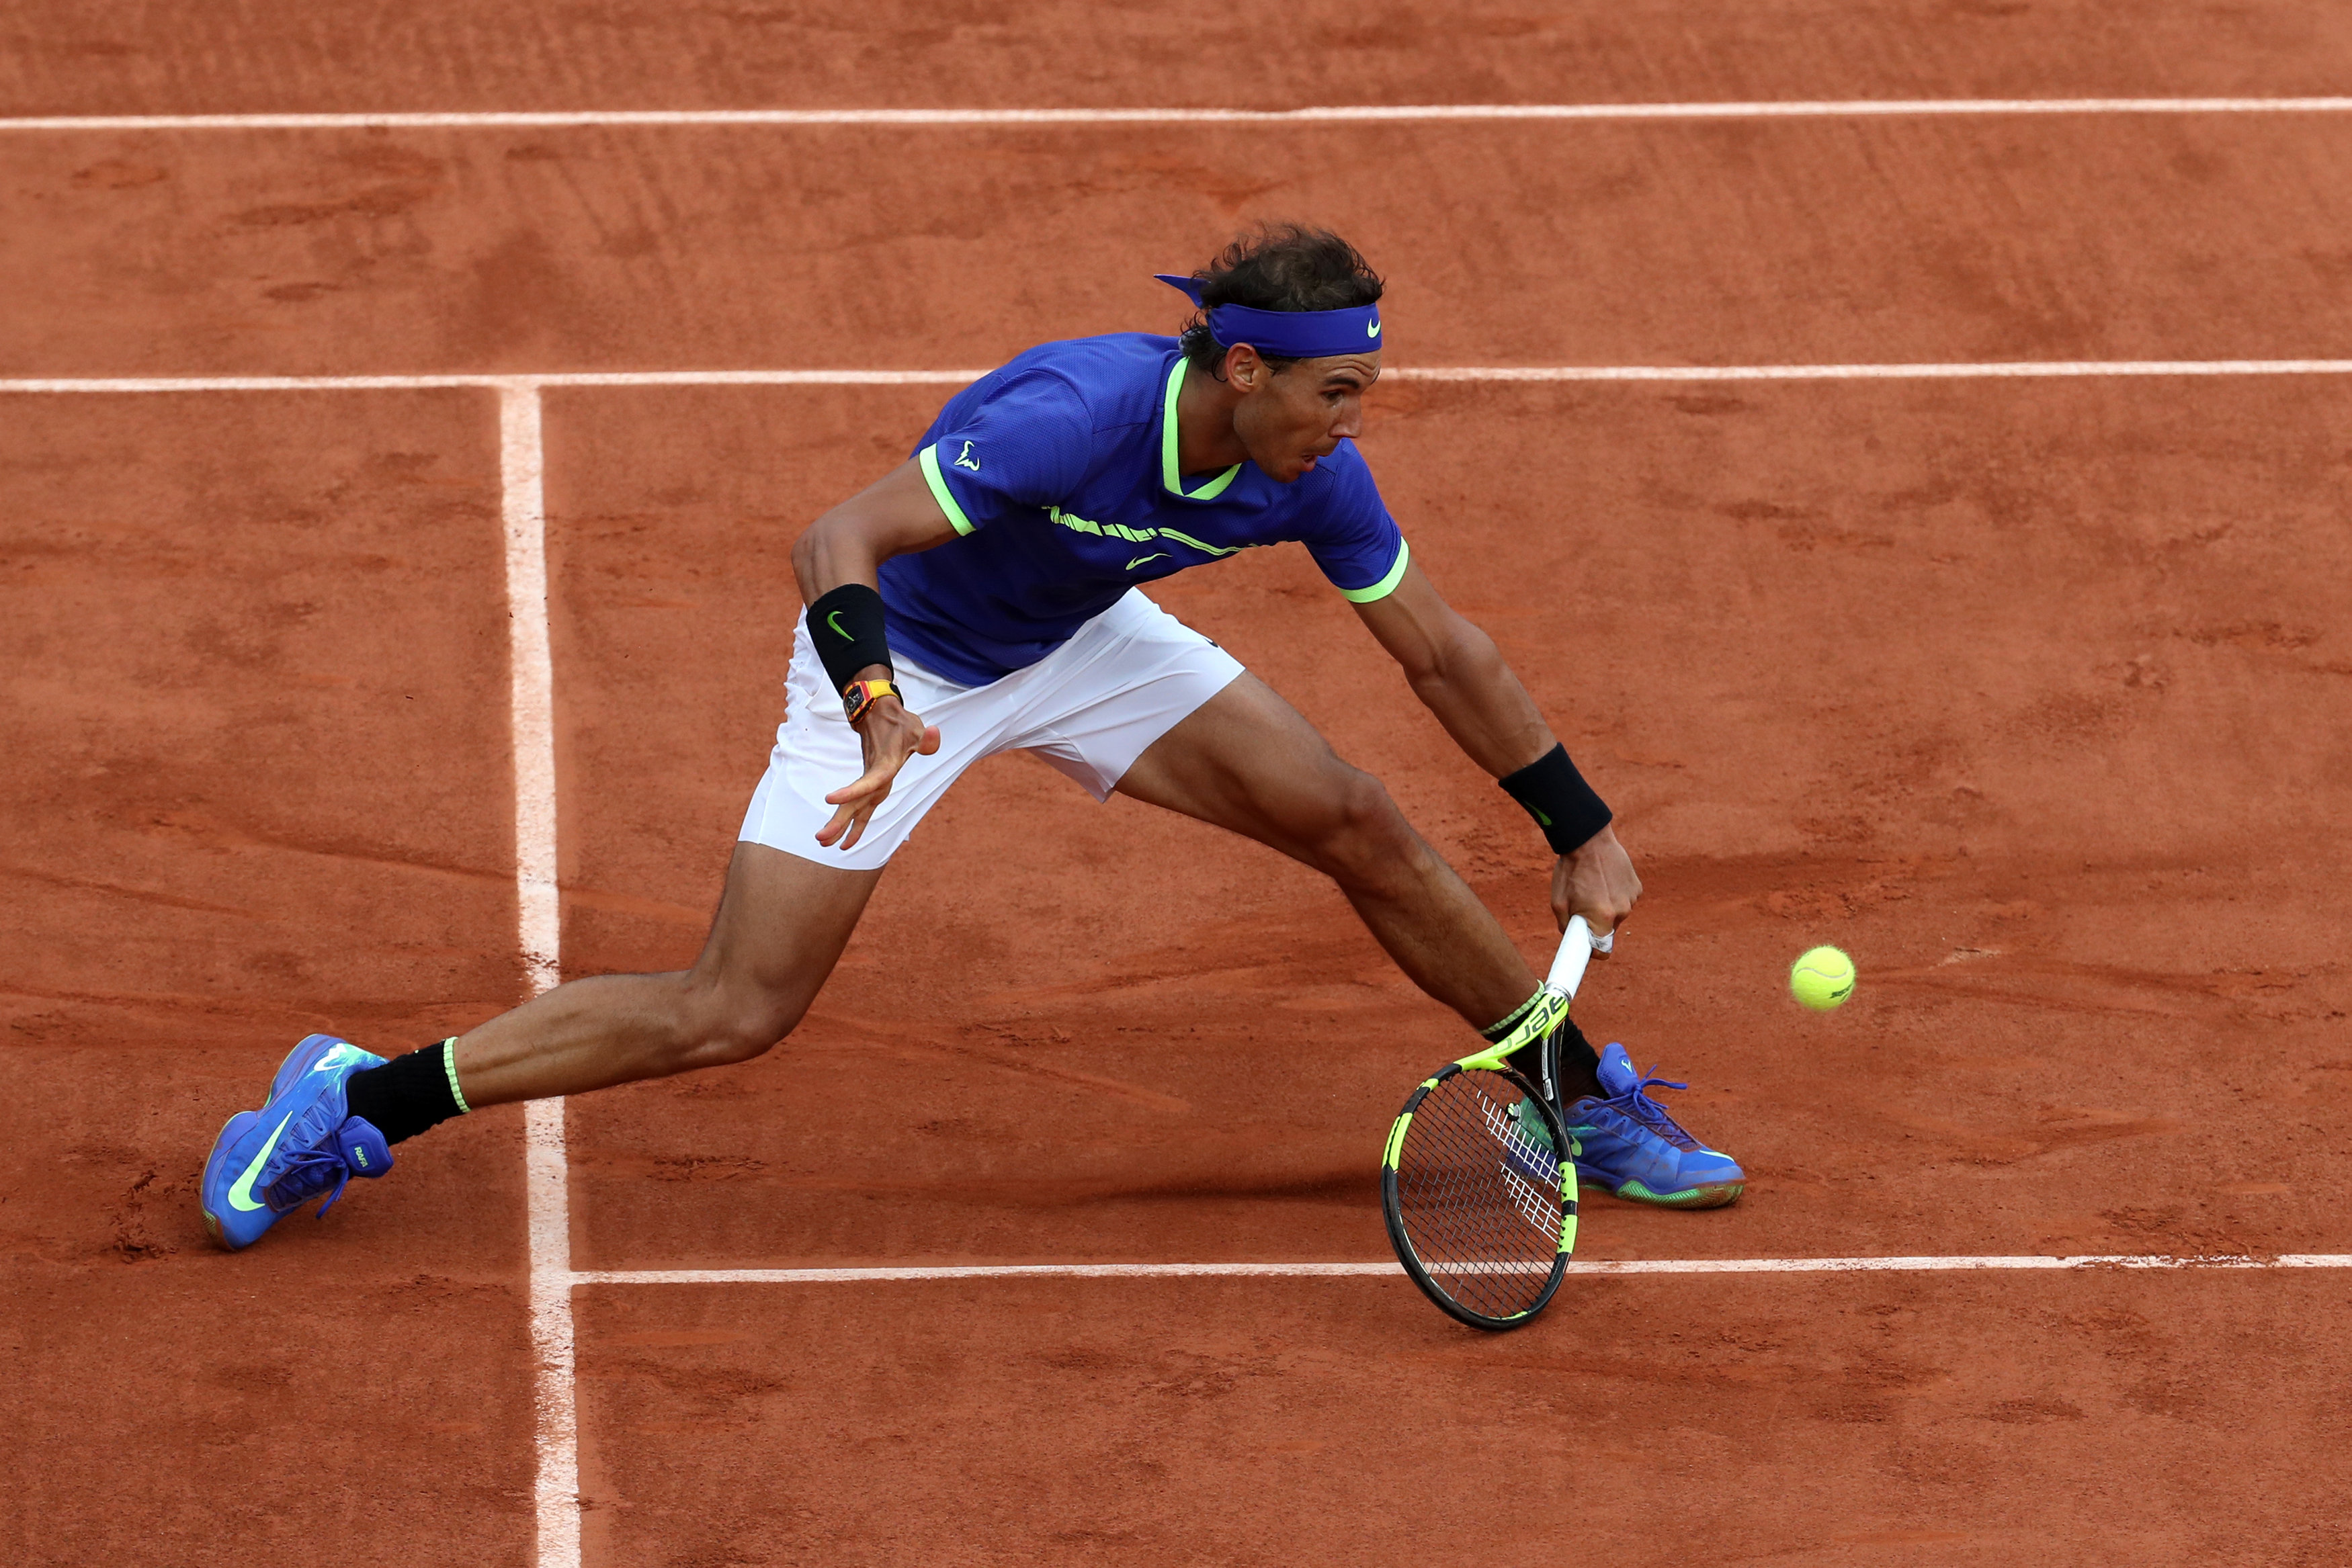 Spain's Rafael Nadal in action during the final against Switzerland's Stan Wawrinka Paris, France on June 11, 2017. (Reuters/Pascal Rossignol